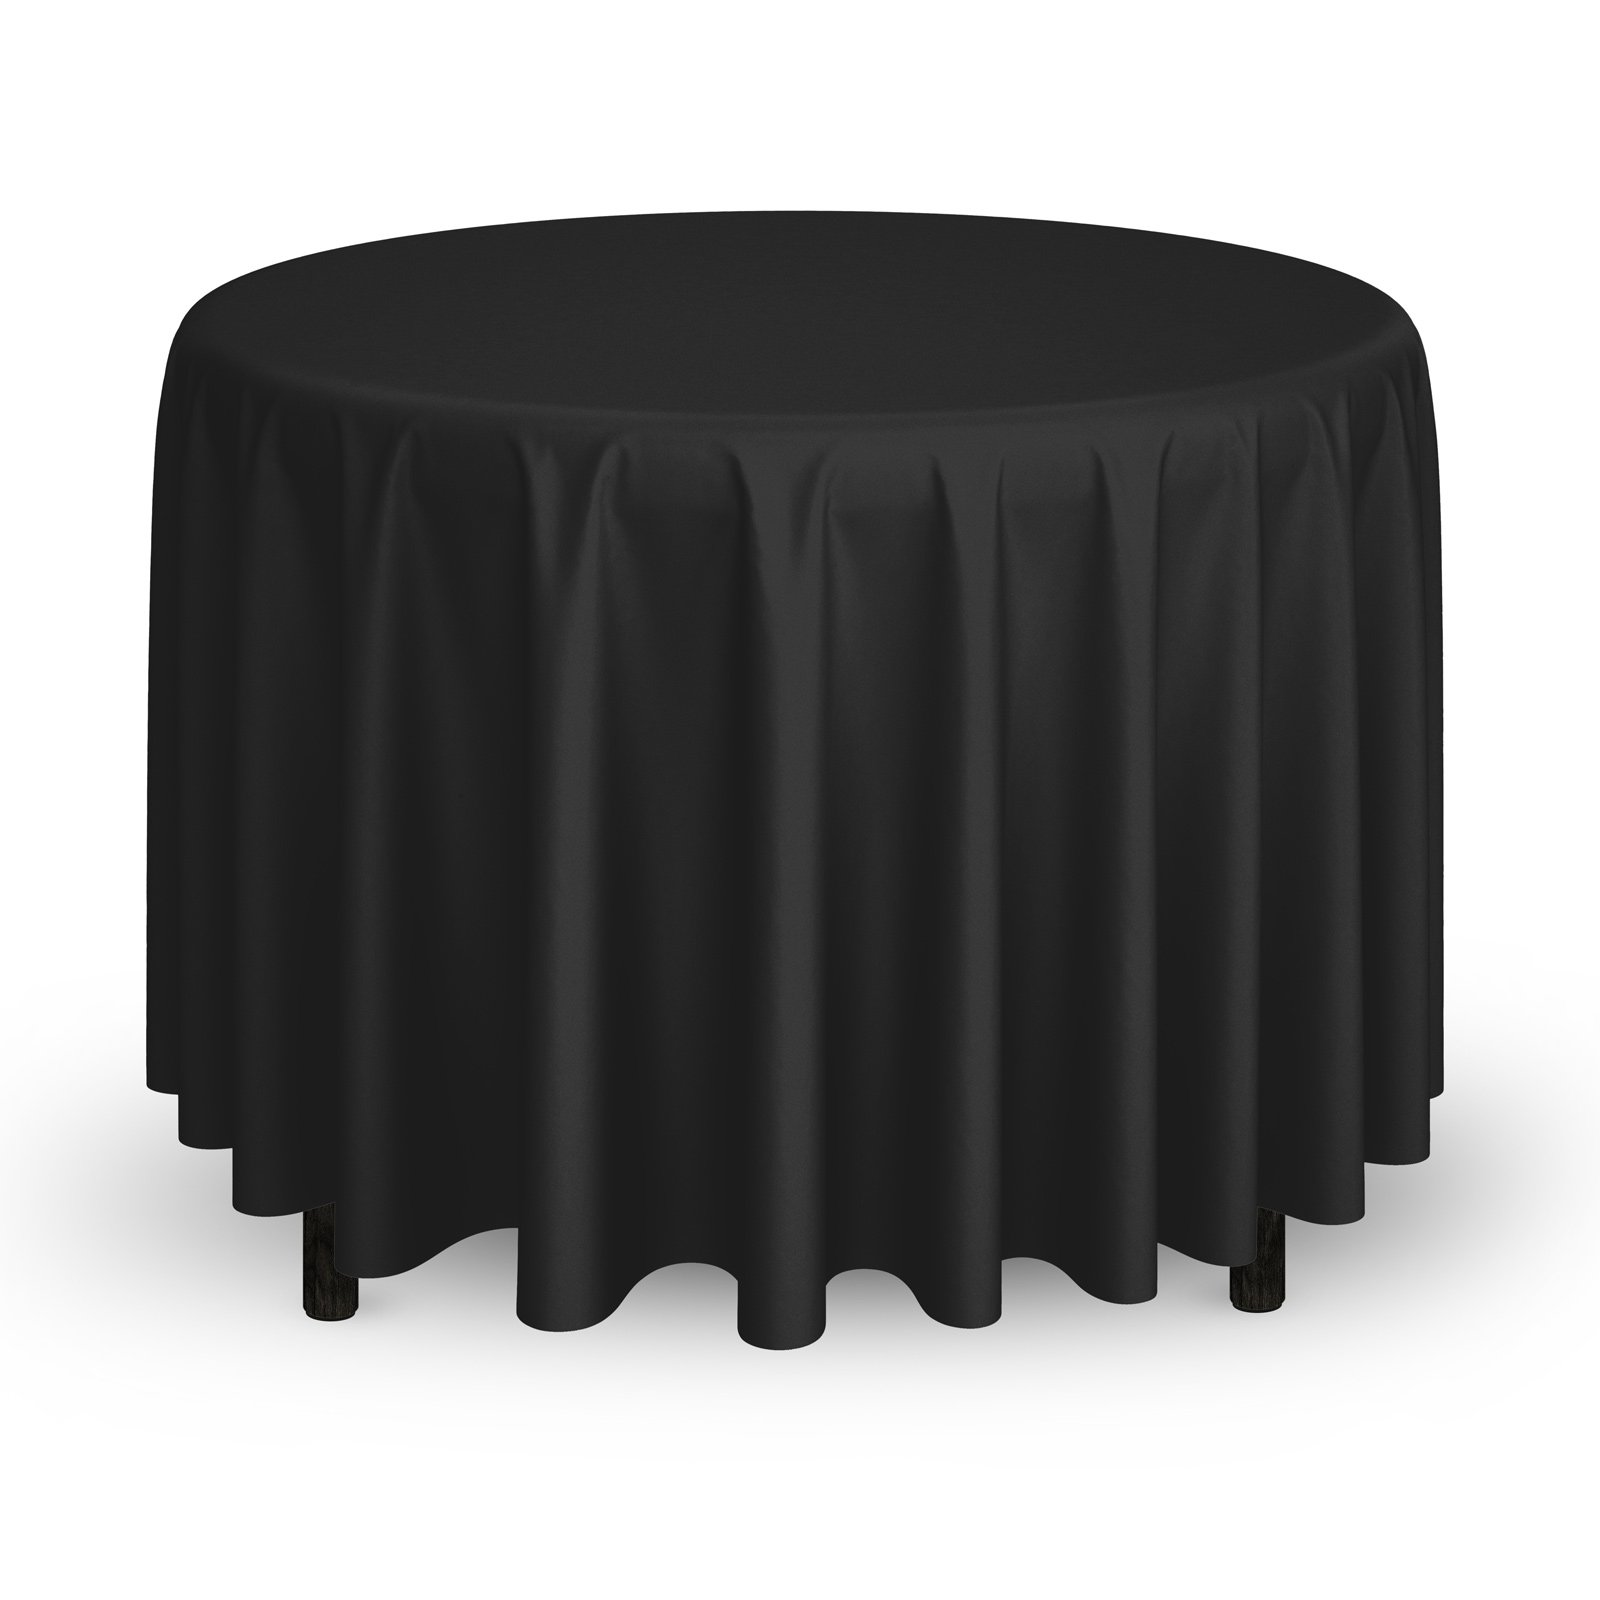 Mill & Thread - 10 Premium 120'' Round Tablecloths for Wedding/Banquet/Restaurant - Polyester Fabric Table Cloths - Black